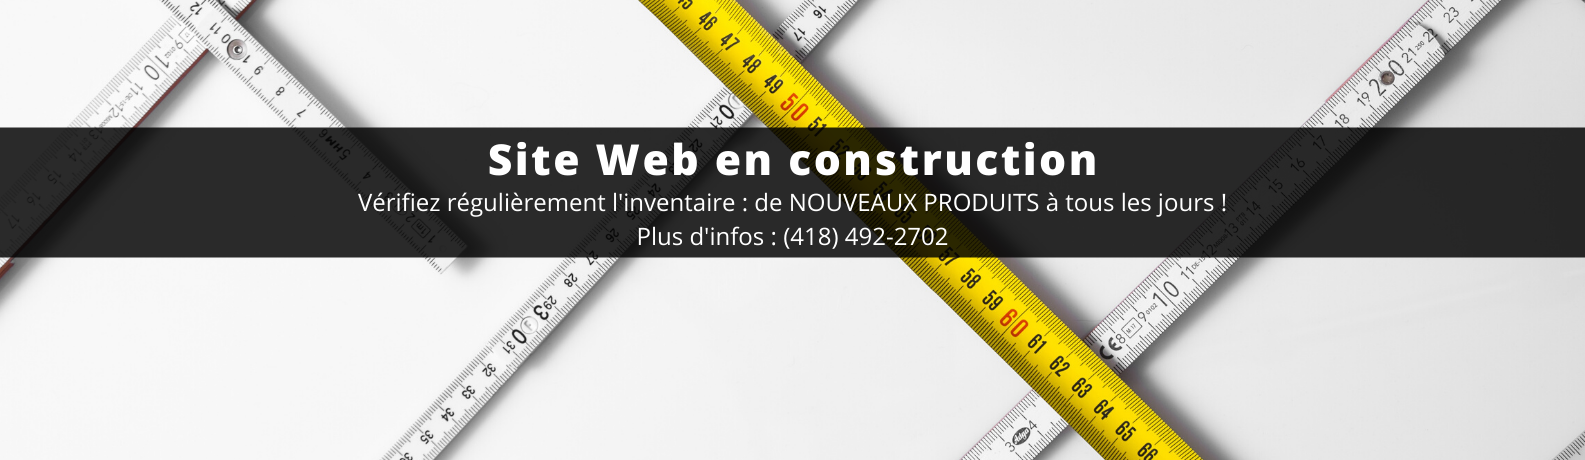 BANNIERE Site Web en construction